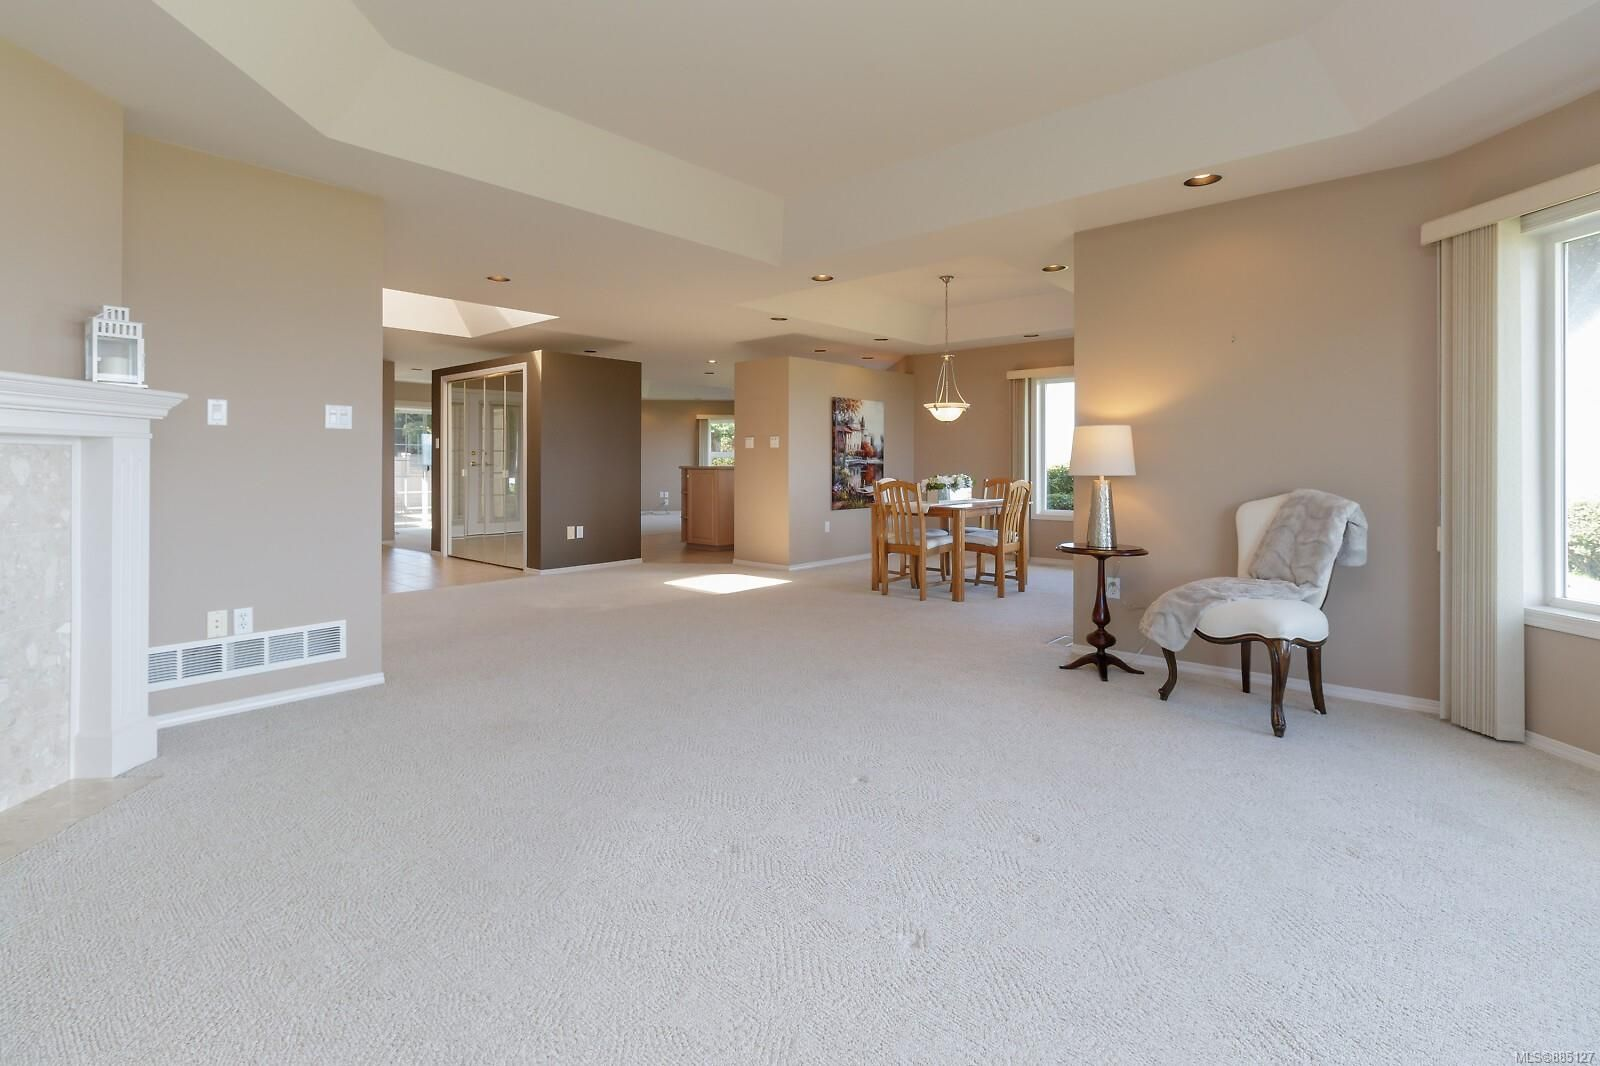 Photo 20: Photos: 26 529 Johnstone Rd in : PQ French Creek Row/Townhouse for sale (Parksville/Qualicum)  : MLS®# 885127